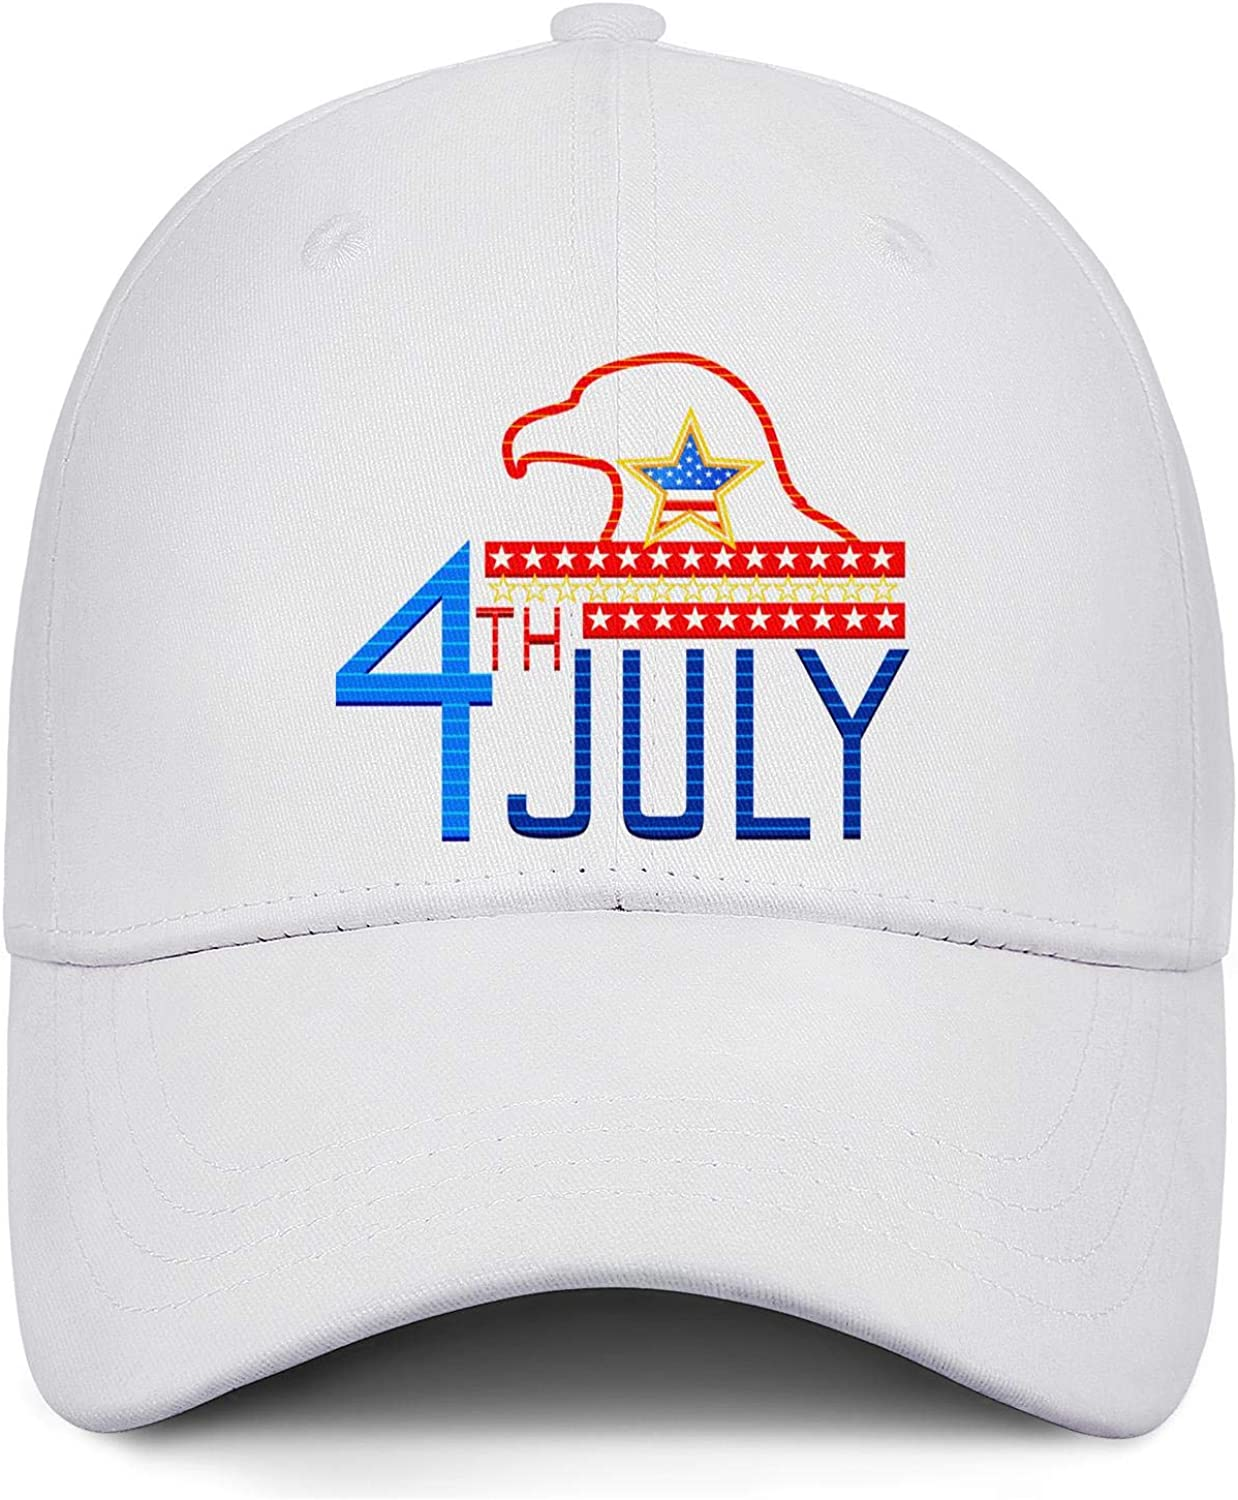 America 4th of July Flags with Eagle Mens Baseball Adjustable Fits Low Profile Outdoor Snapback Hat